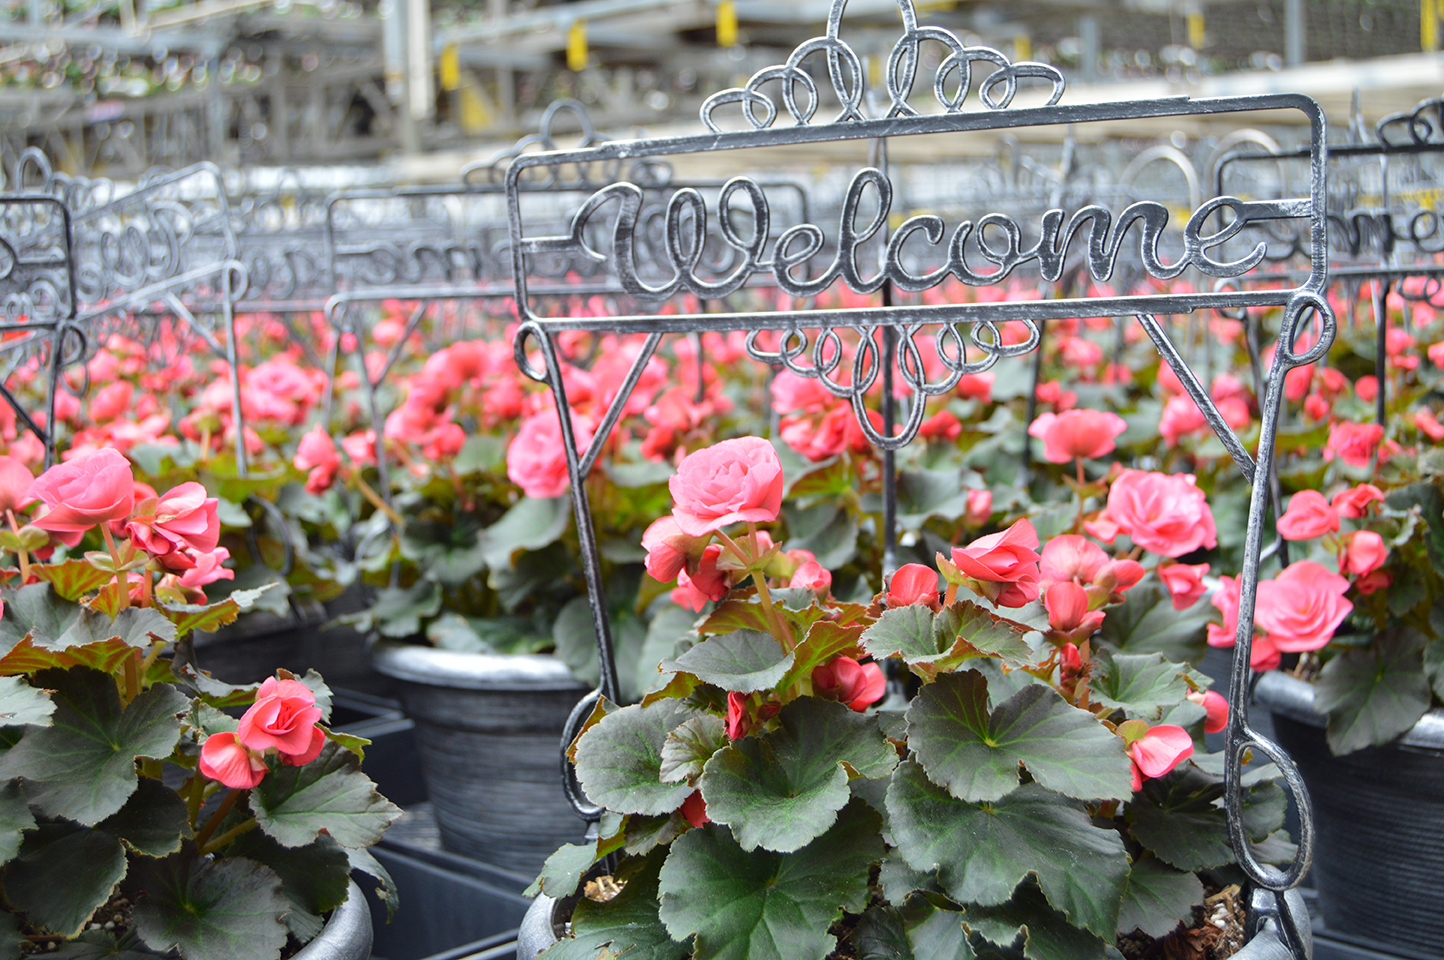 This image shows a close-up of rows of flower pots with pink flowers and the word